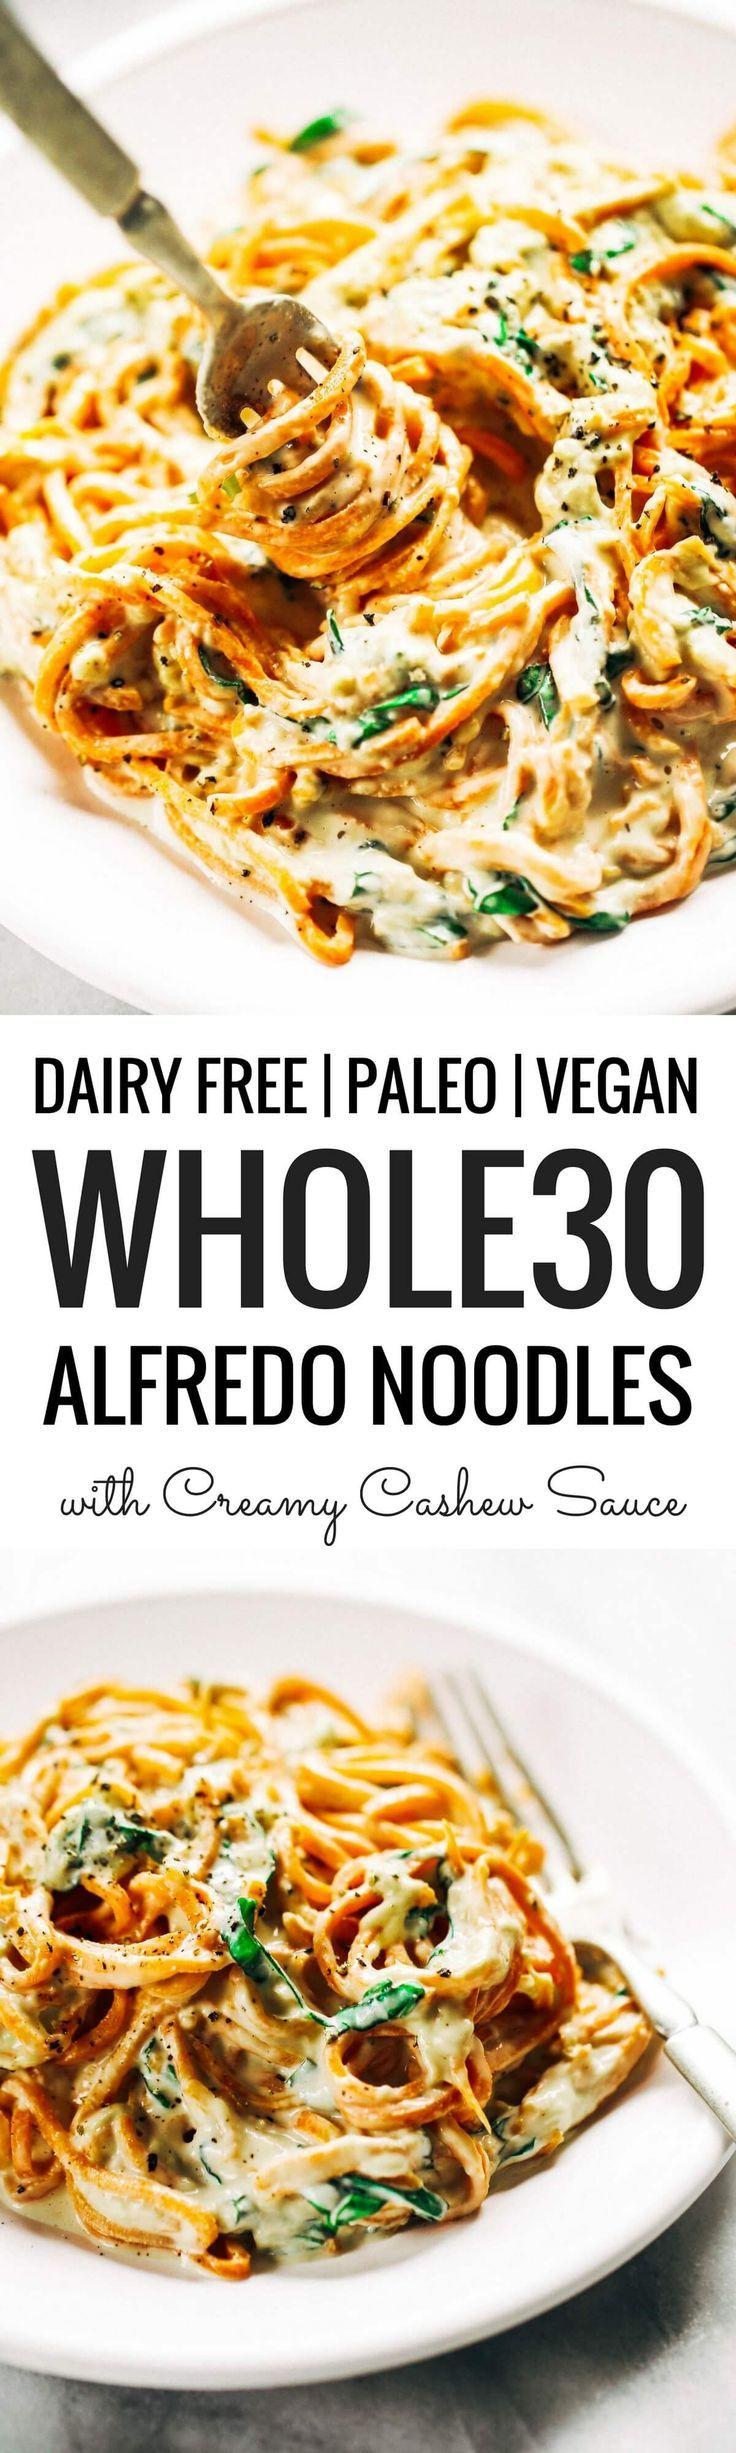 Whole30 creamy carrot noodle alfredo- made with vegan cashew cheese sauce. Whole30, paleo, and dairy free. An easy healthy family recipe everyone will love. Perfect for meal prep; can be made ahead and frozen- pulled out at your convenience! Easy whole30